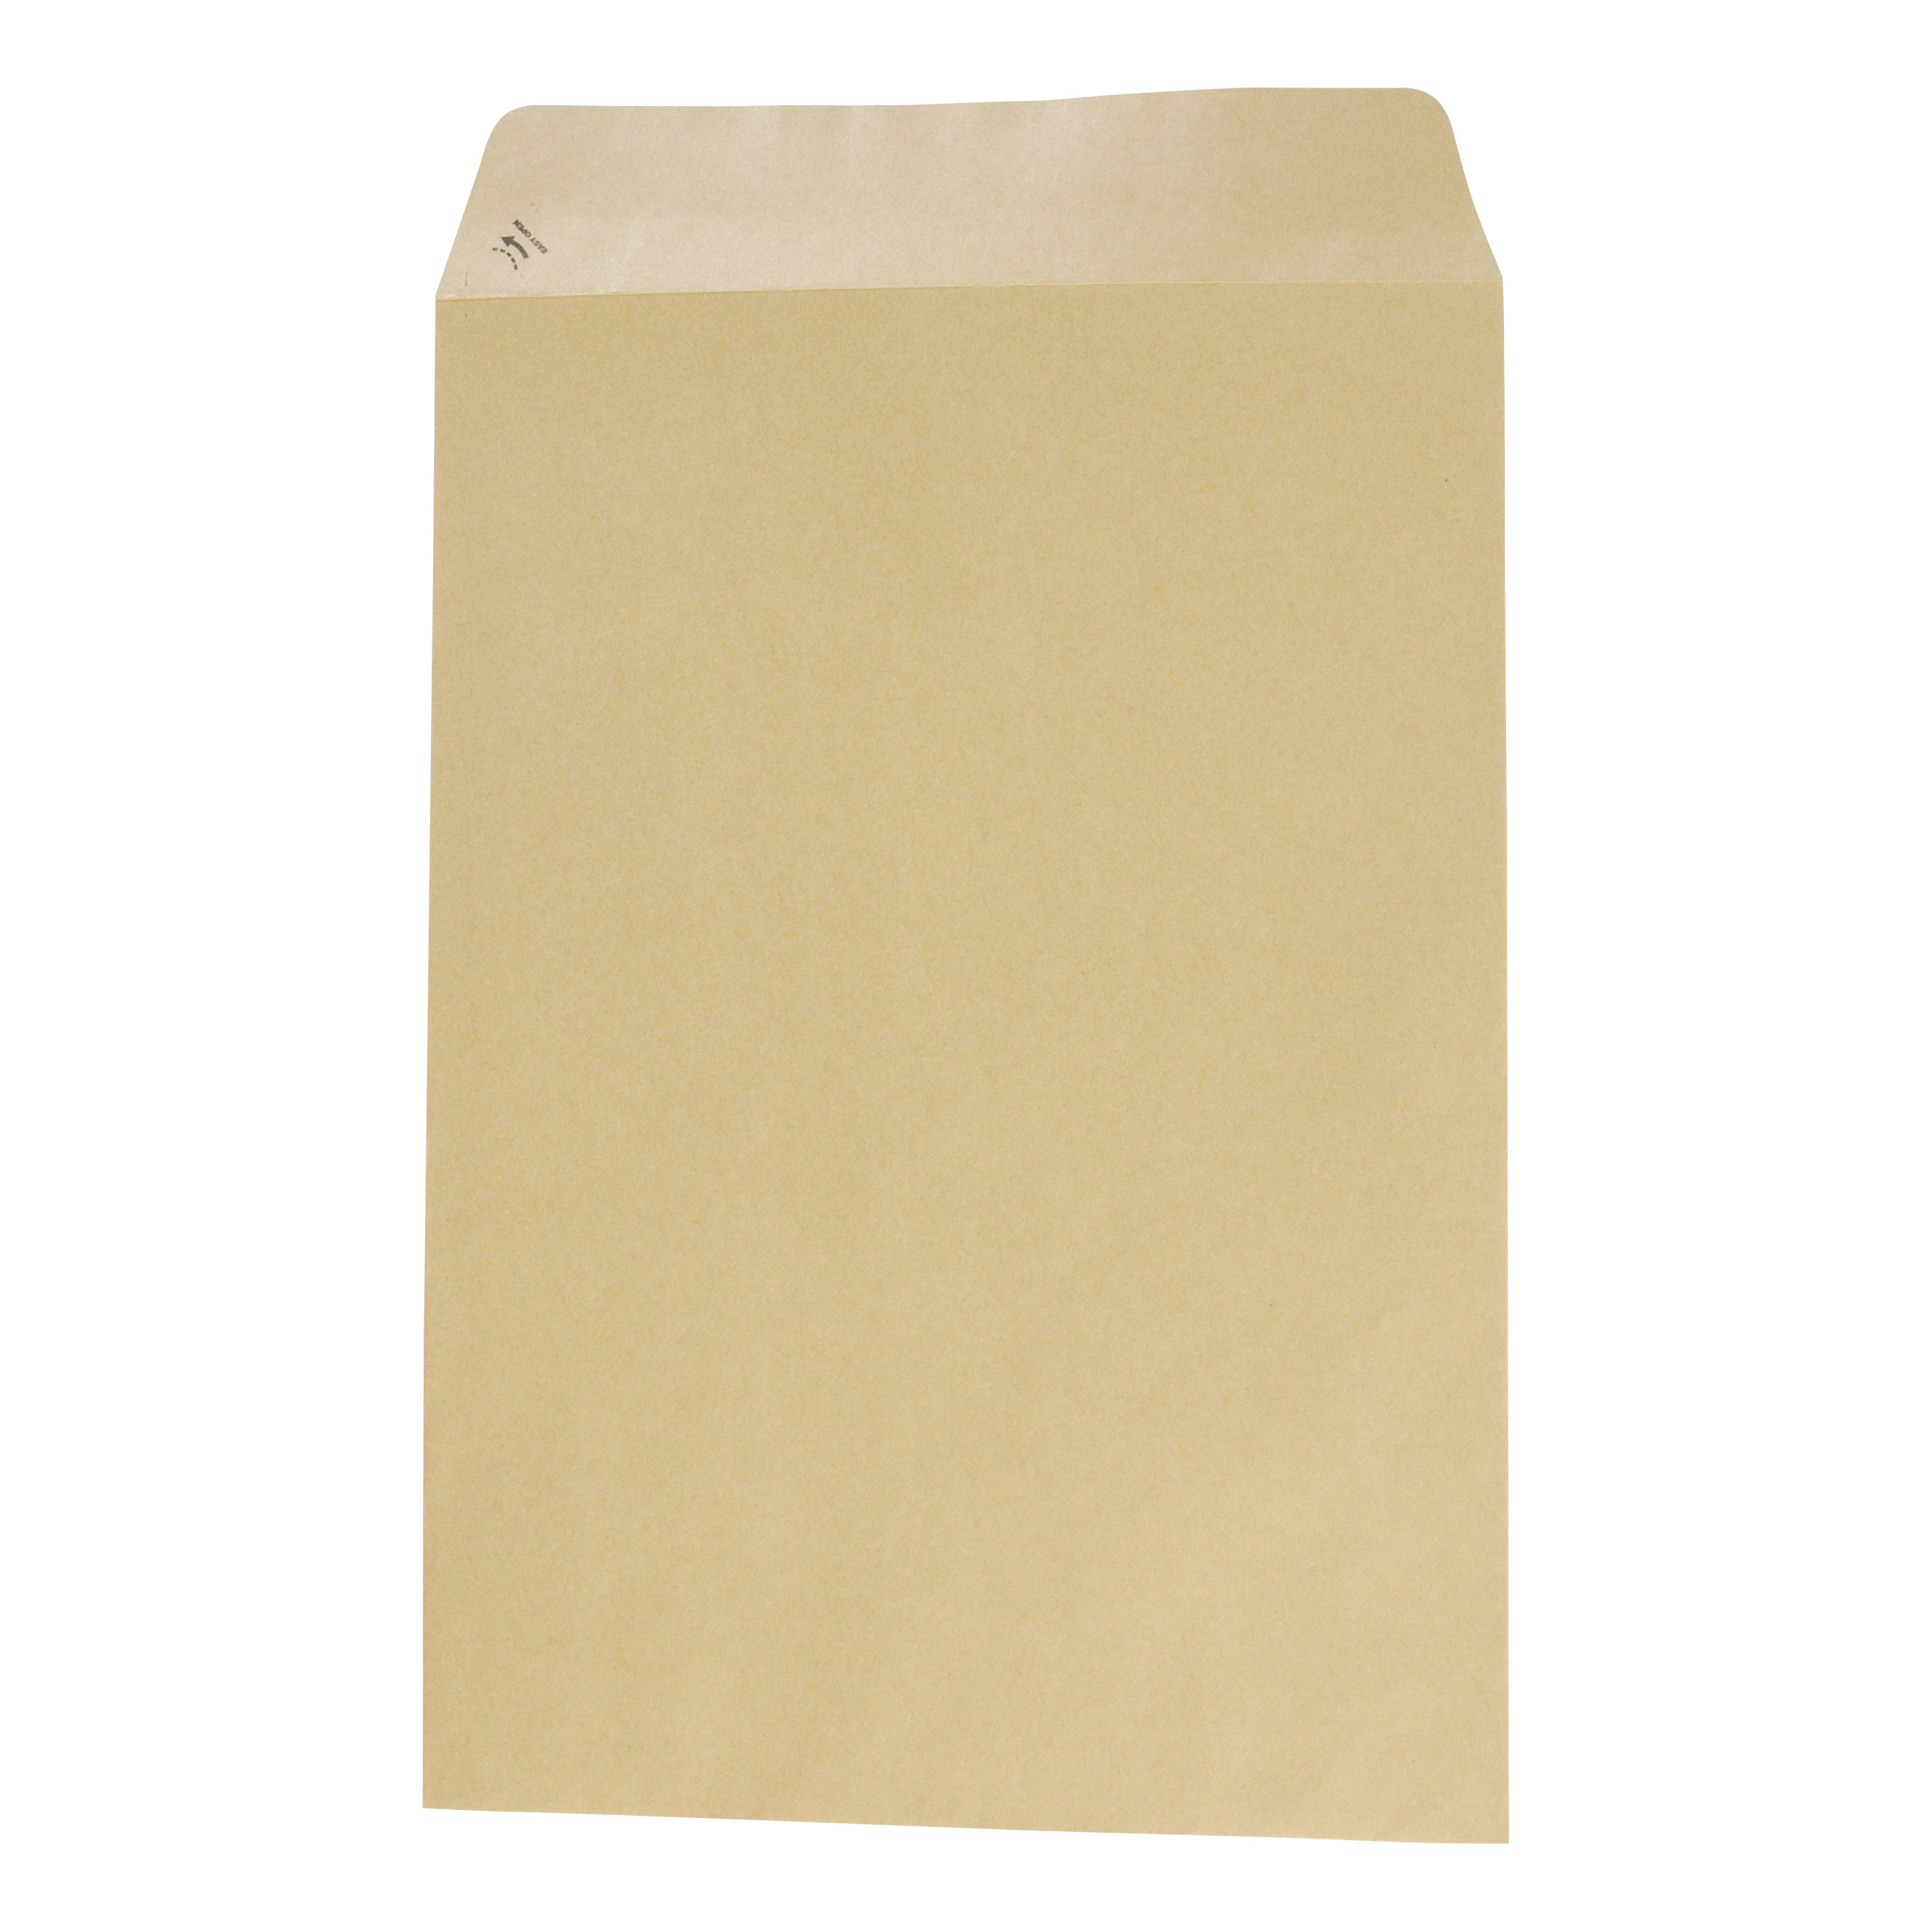 Basildon Bond Envelopes C4 Pocket Peel and Seal Recycled 90gsm Manilla Ref C80191 Pack 250 PRIZE DRAW